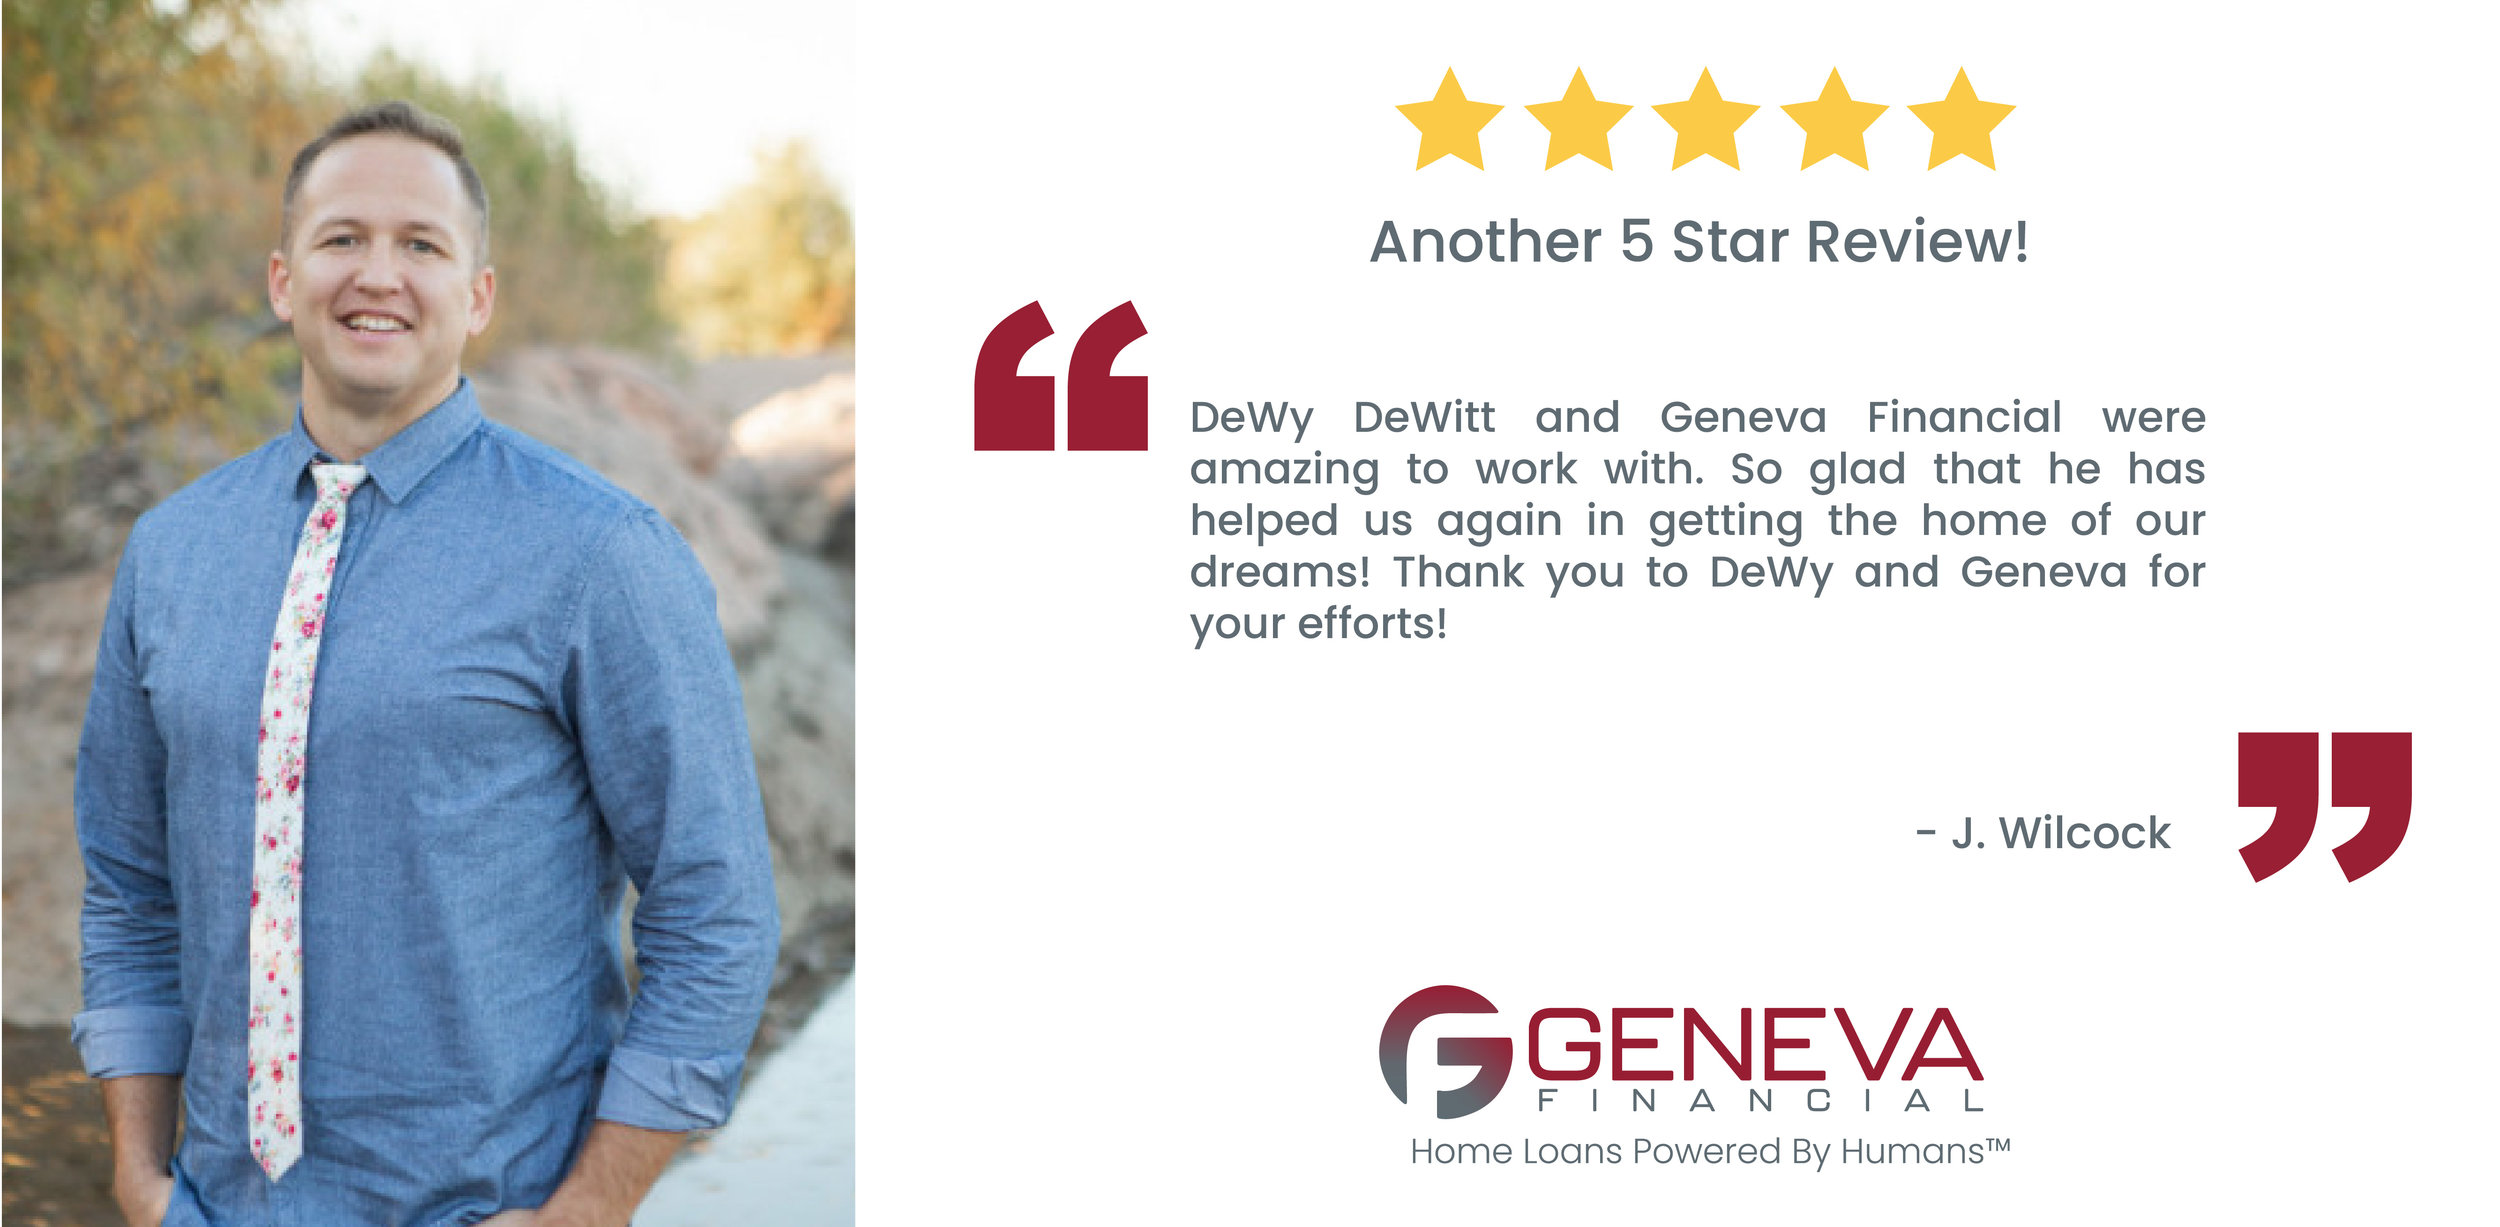 DeWy DeWitt Loan Officer serving the states of Arizona and Utah